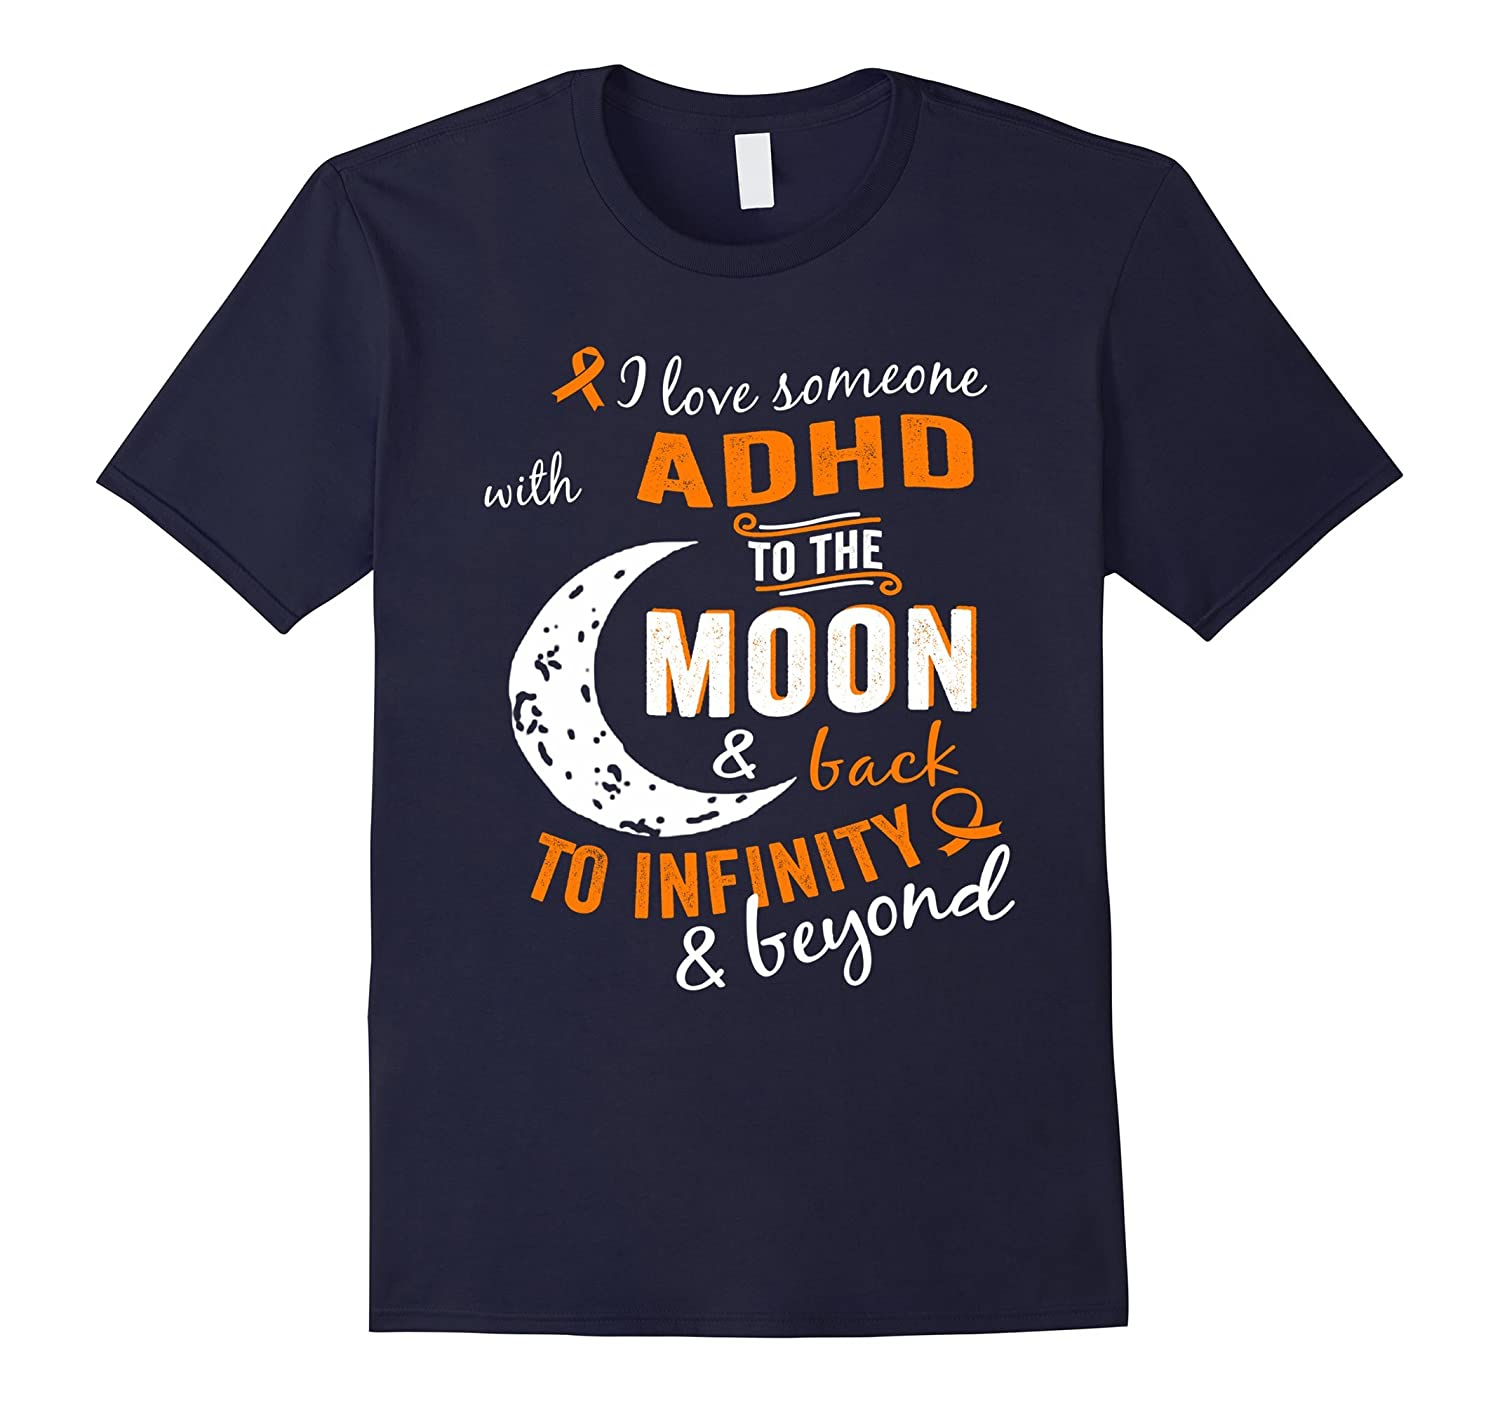 Adhd Shirt For Kids and Your Family-CD